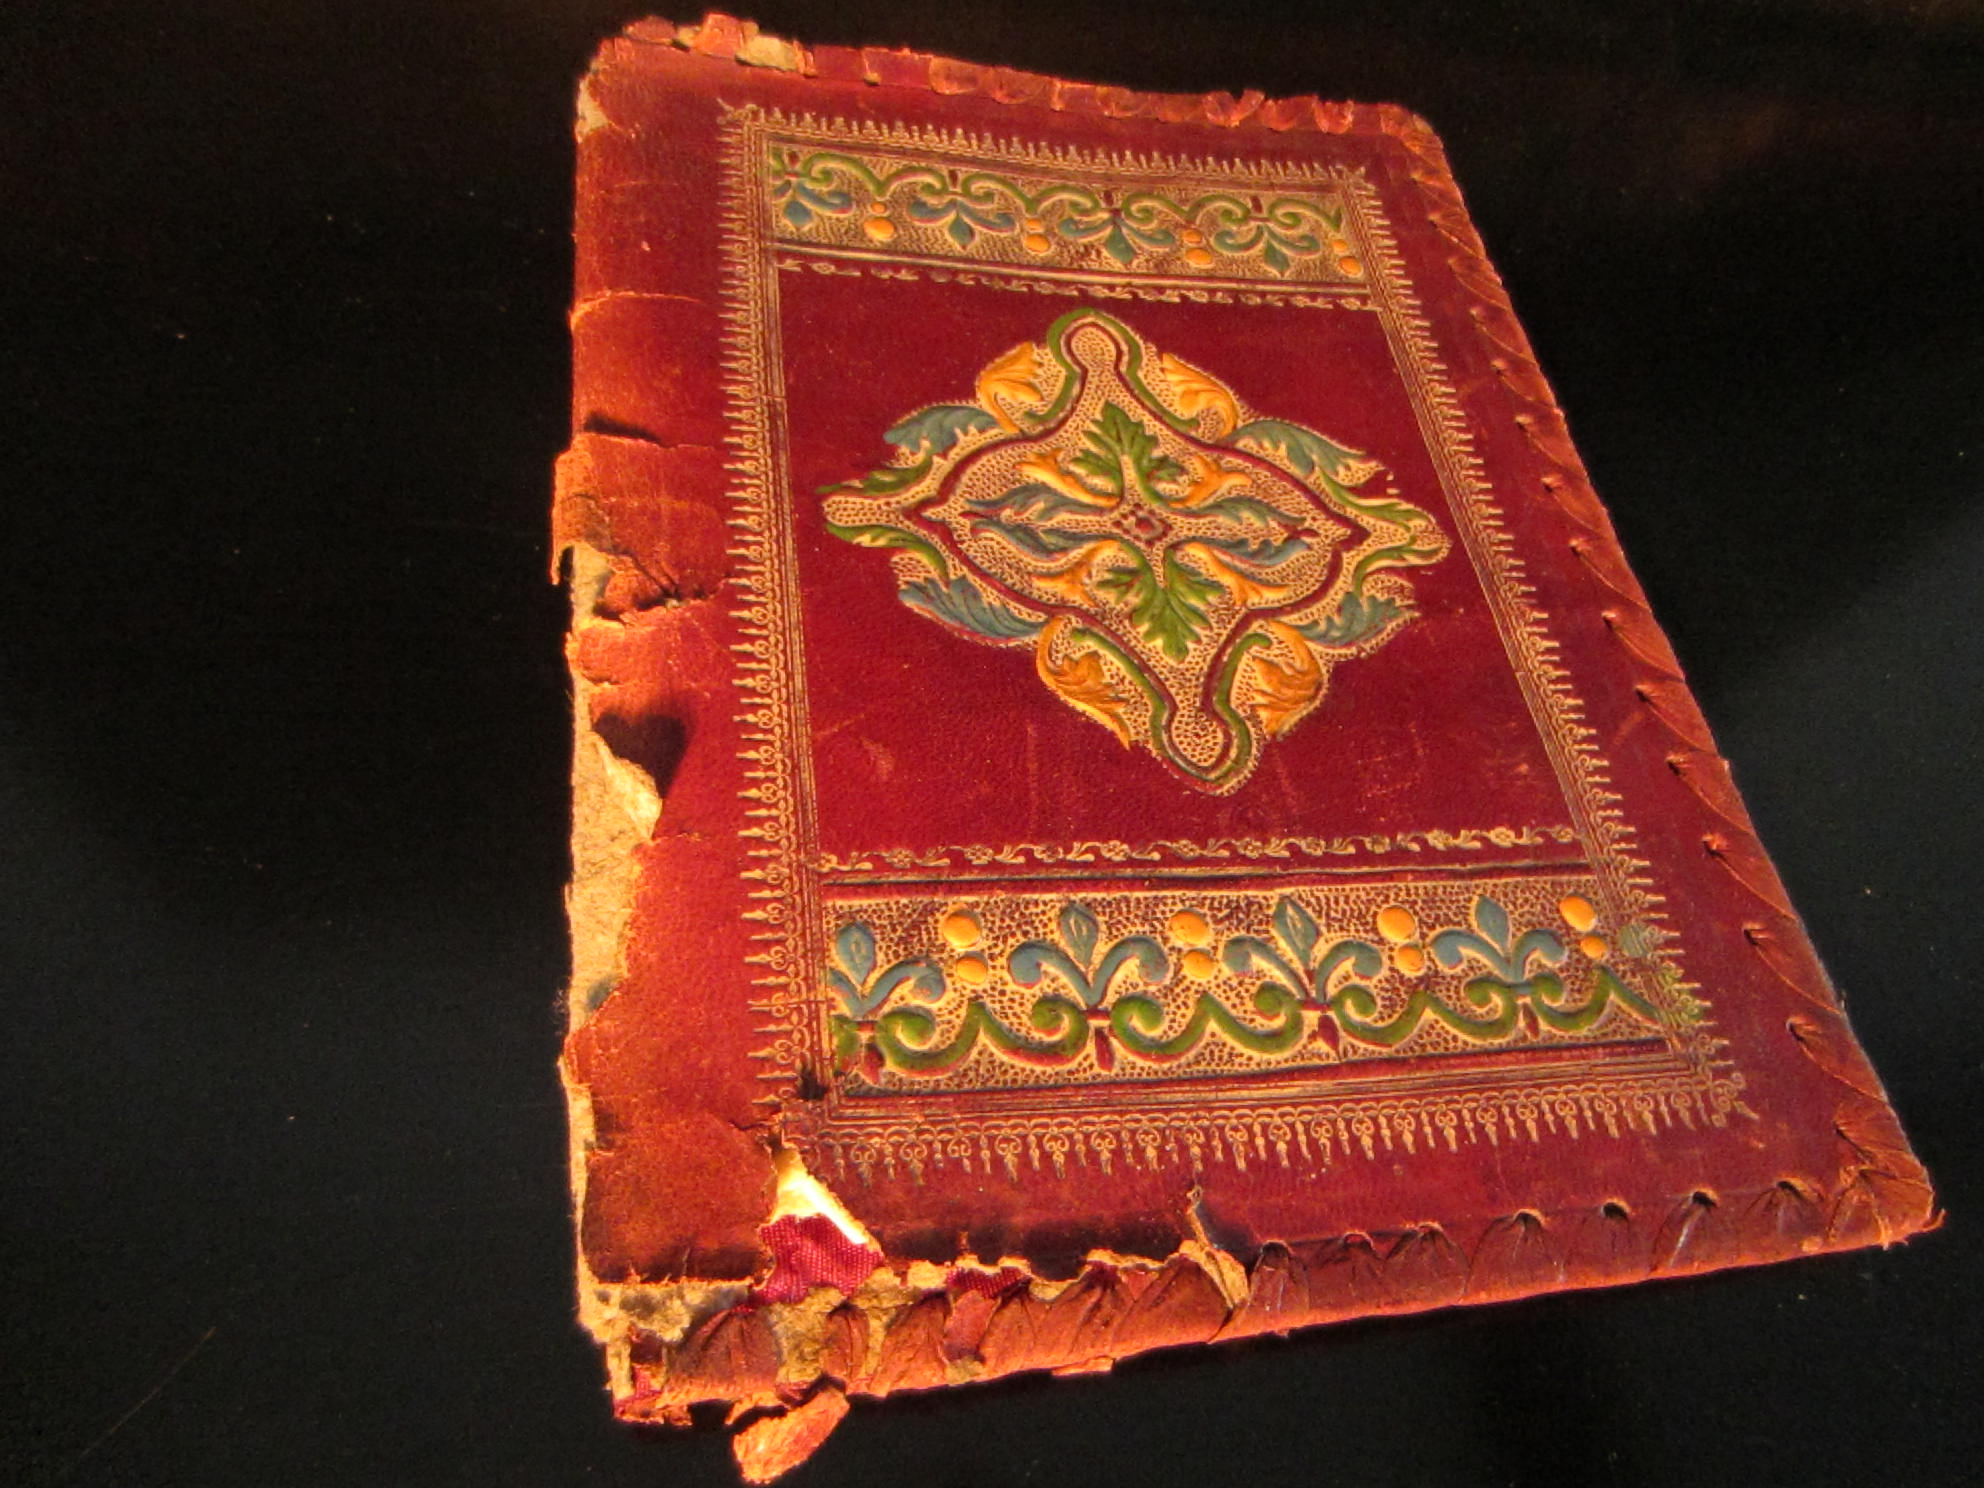 Old Book Covers For Sale : Made in italy red leather emboss book cover for sale